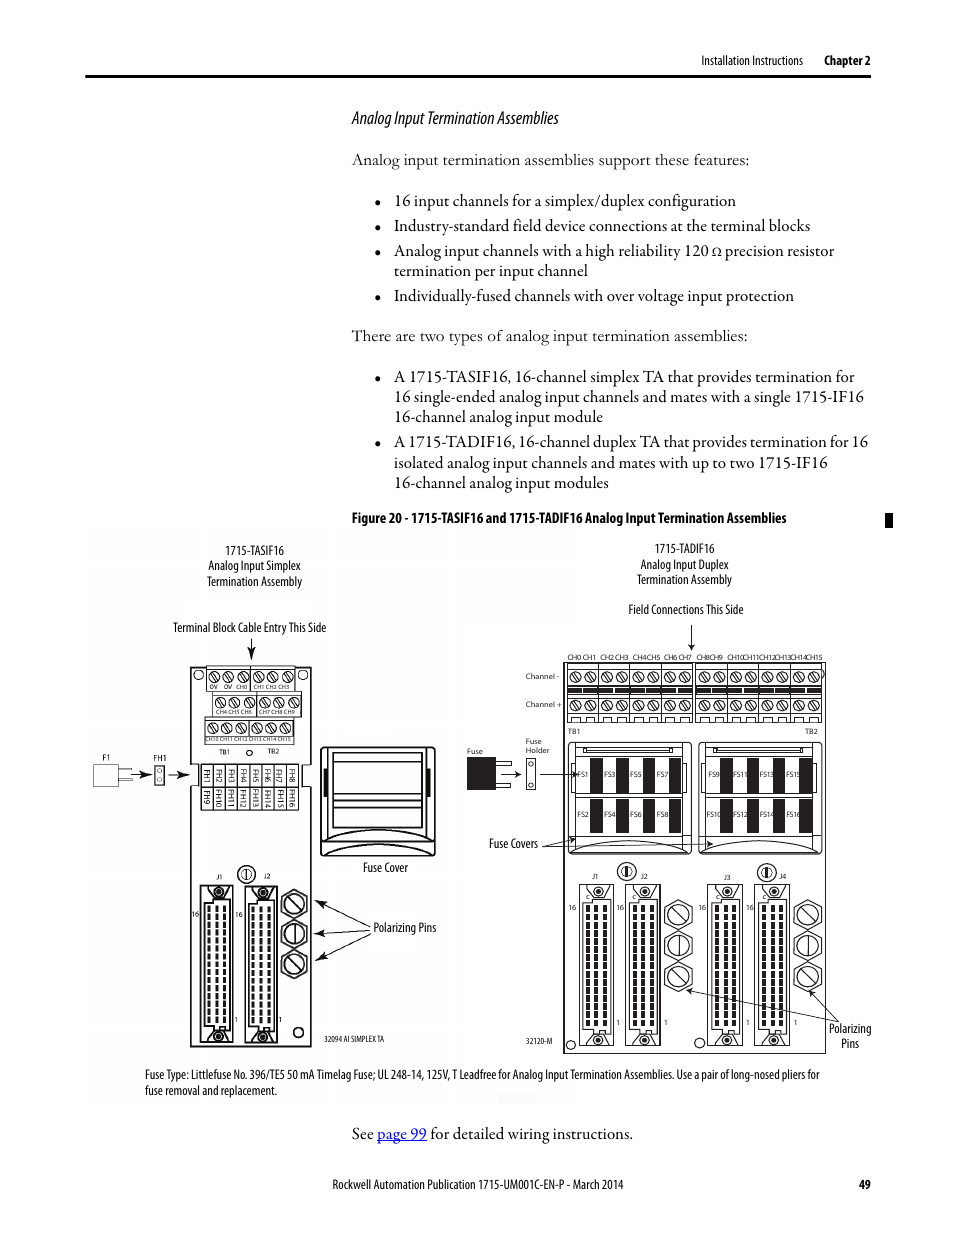 Analog input termination assemblies, See page 99 for detailed wiring instructions | Rockwell Automation 1715-OF8I Redundant I/O System User Manual User ...